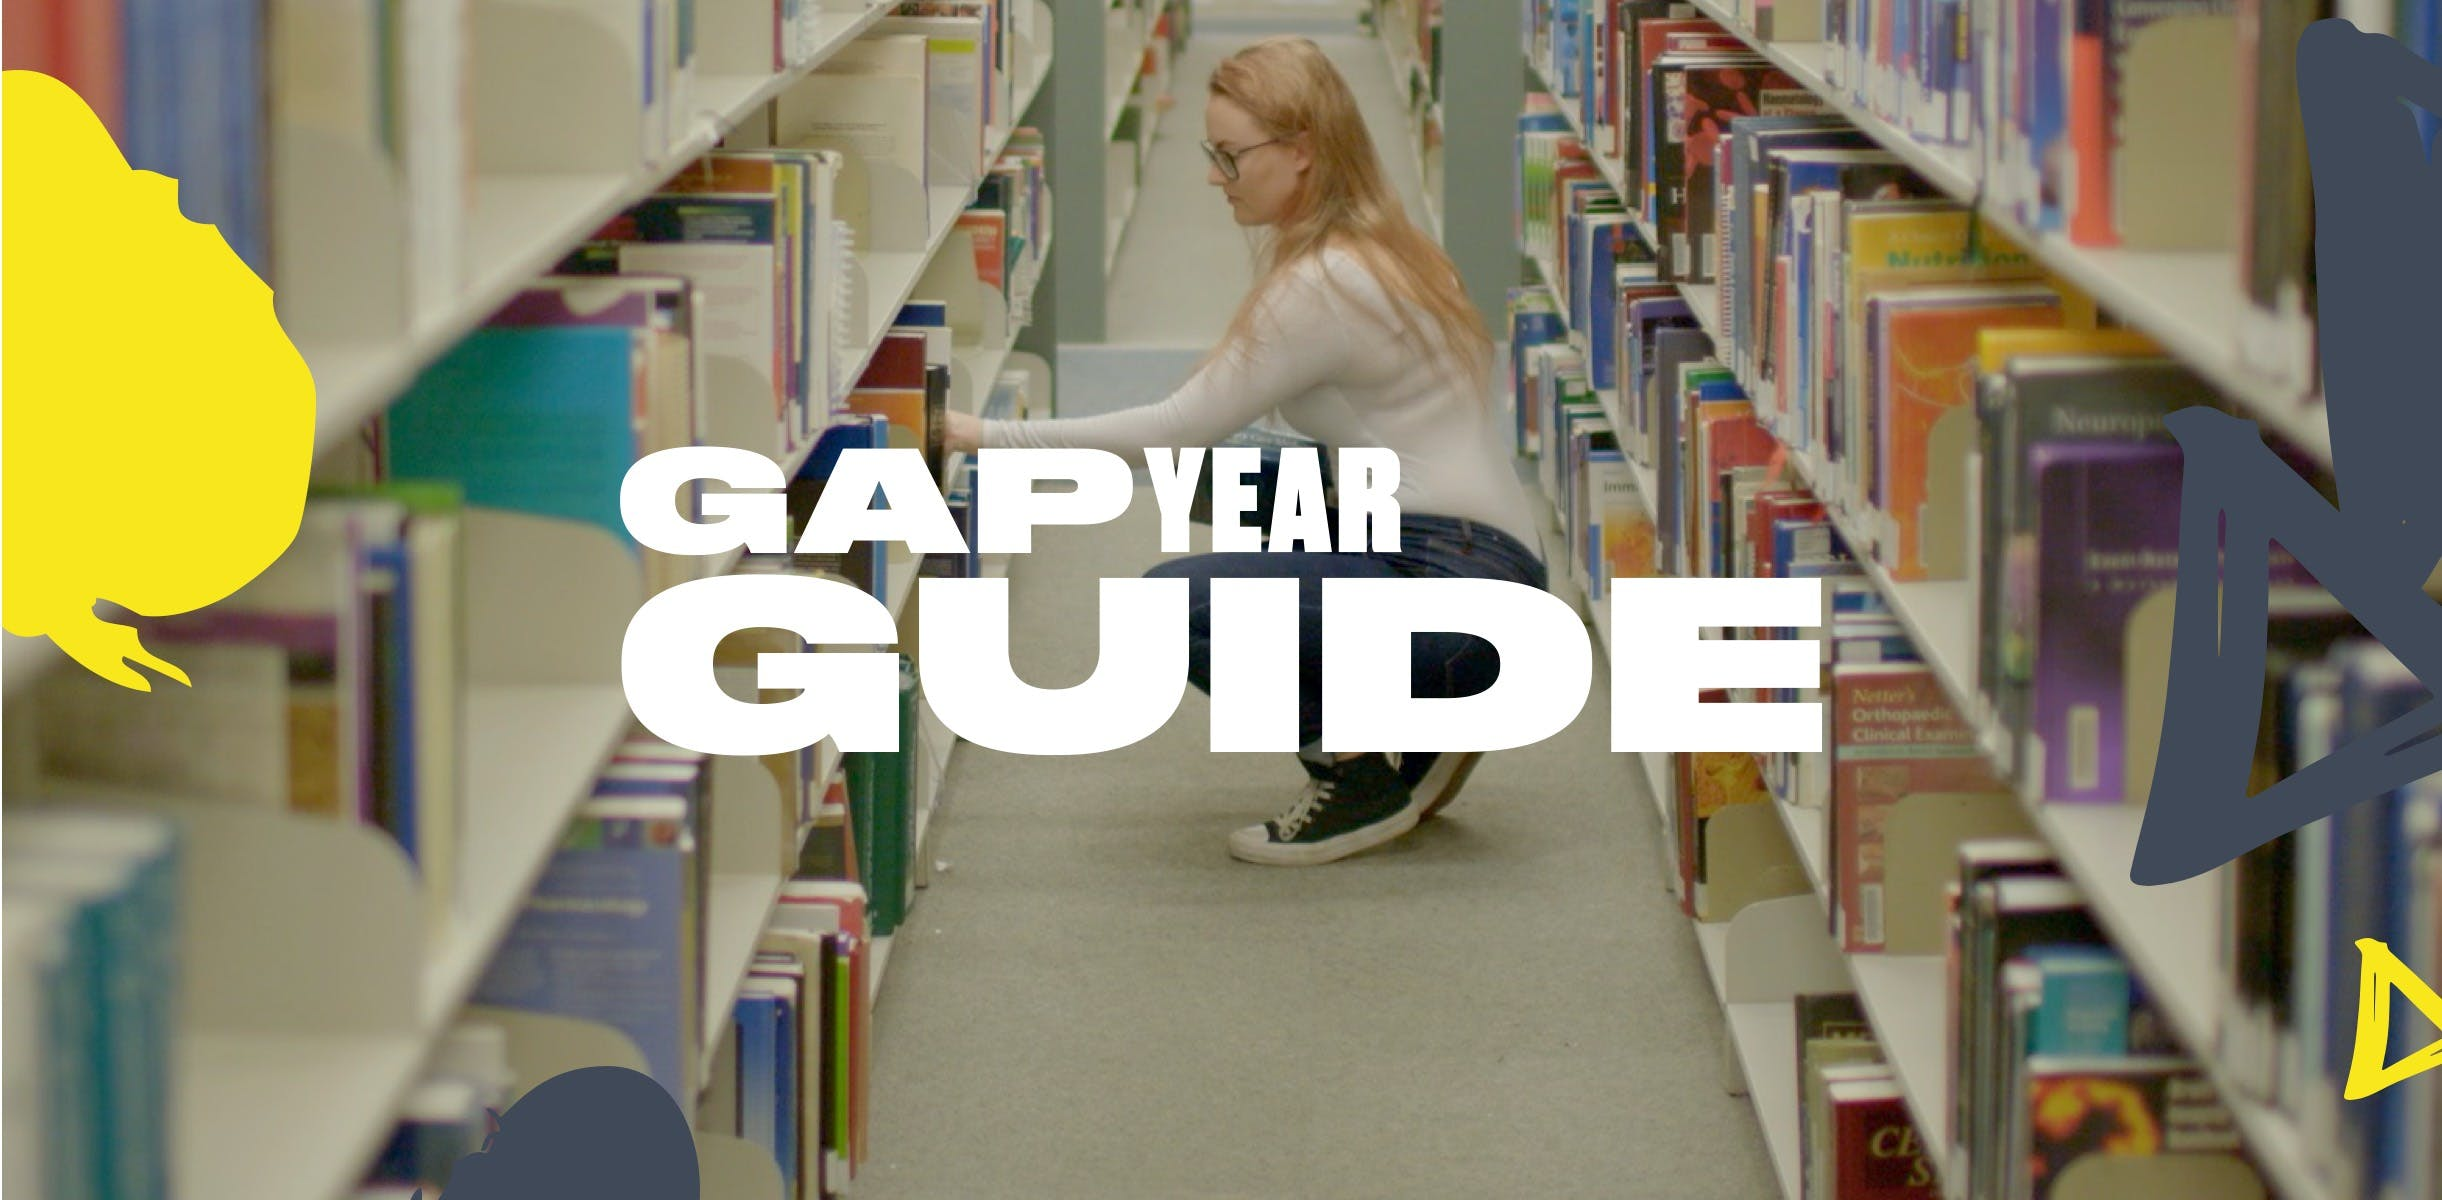 ACTIVE PATHWAYS TO UNI AND GAP YEAR